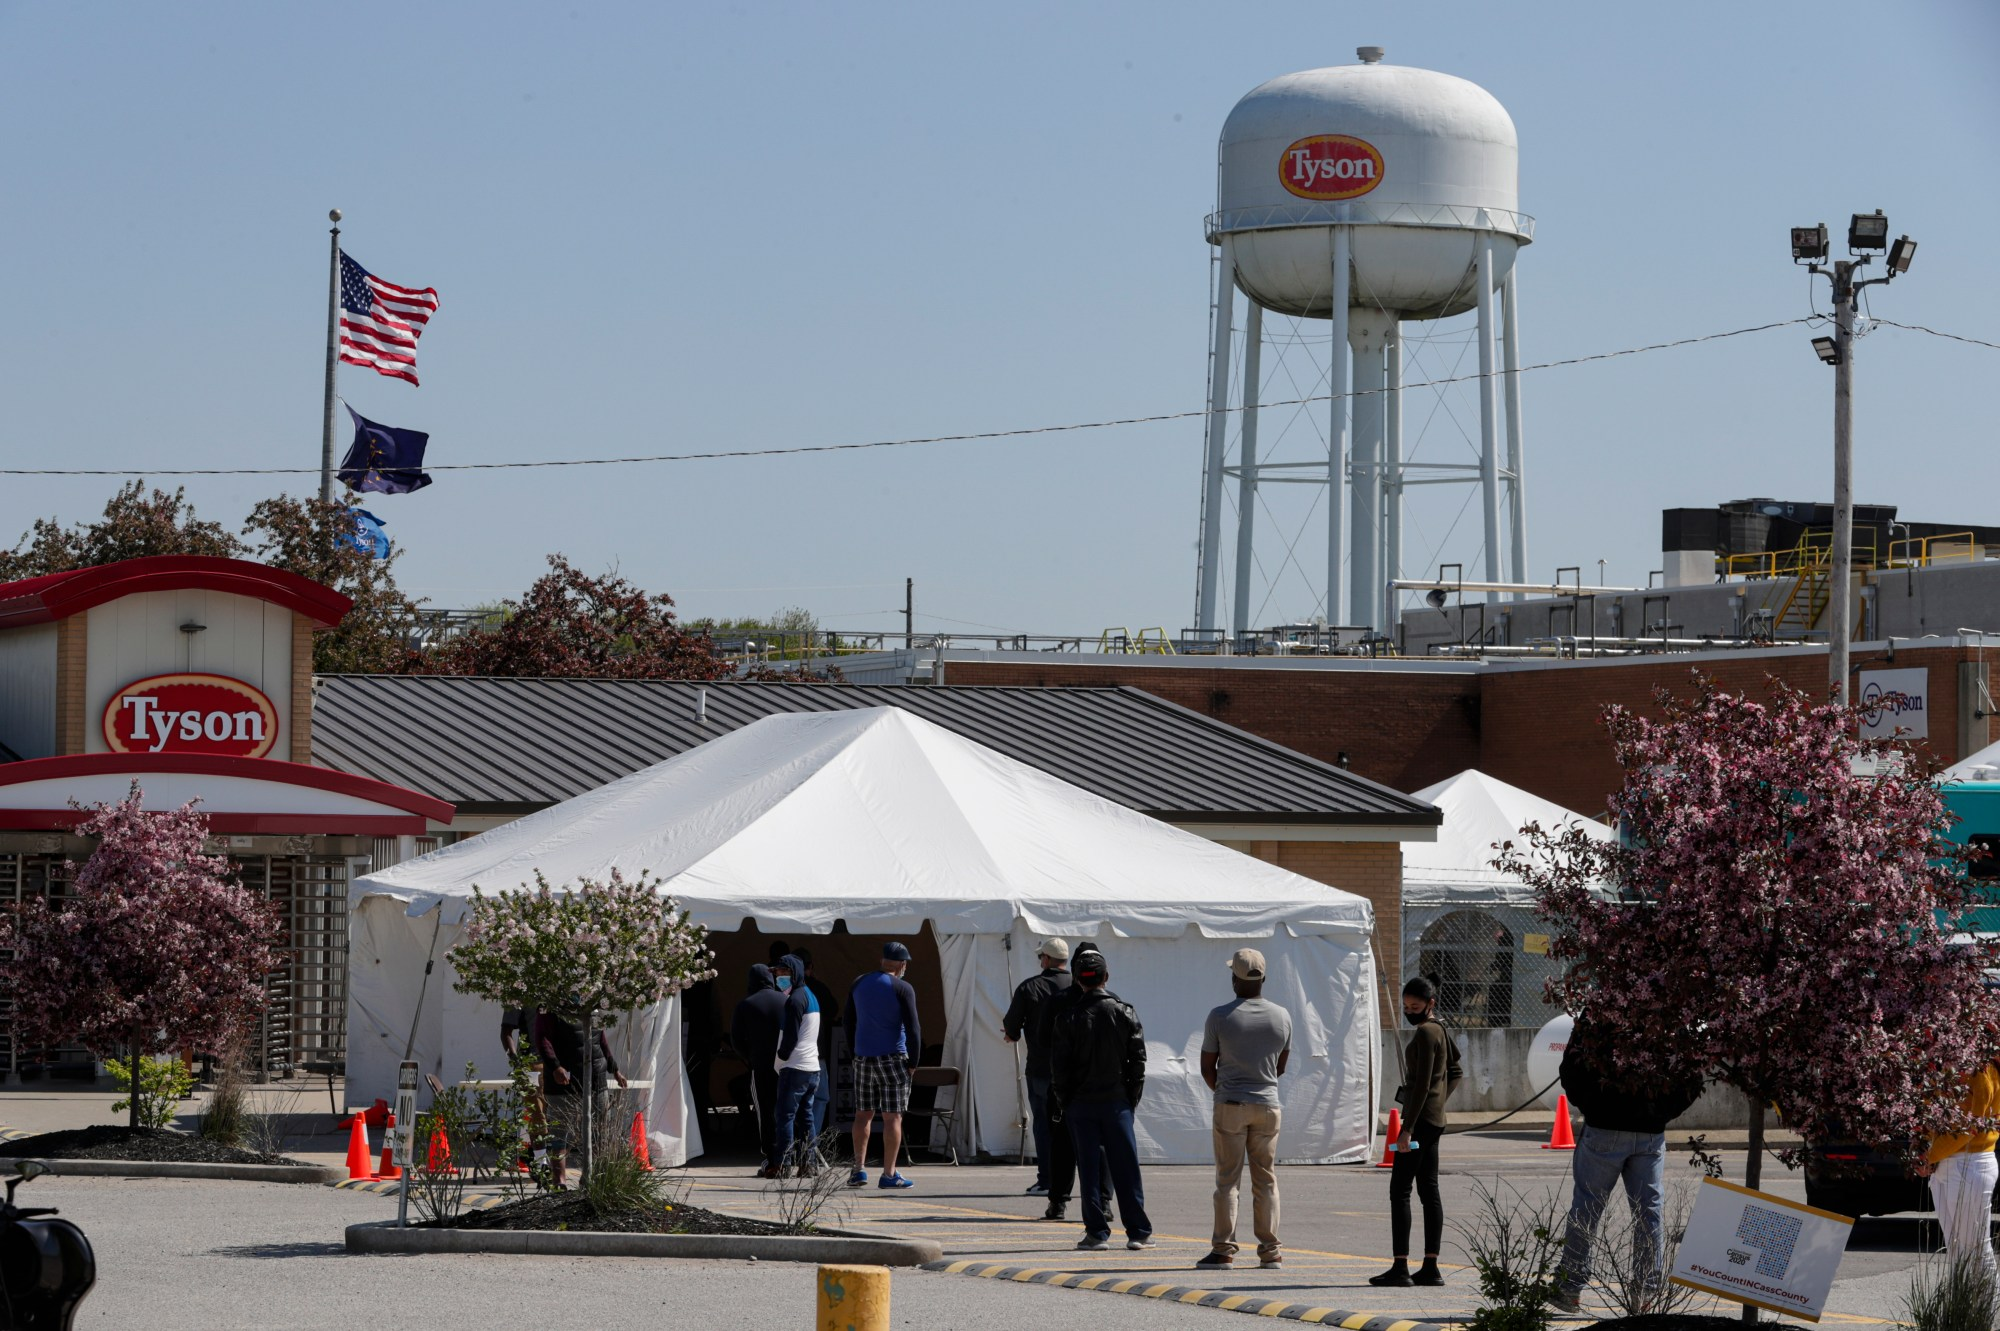 In this May 7, 2020, file photo workers wait in line to enter the Tyson Foods pork processing plant in Logansport, Ind. At least 59,000 meatpacking workers became ill with COVID-19 and 269 workers died when the virus tore through the industry last year, which is significantly more than previously thought, according to a new U.S. House report released Wednesday, Oct. 27, 2021. (AP Photo/Michael Conroy, File)